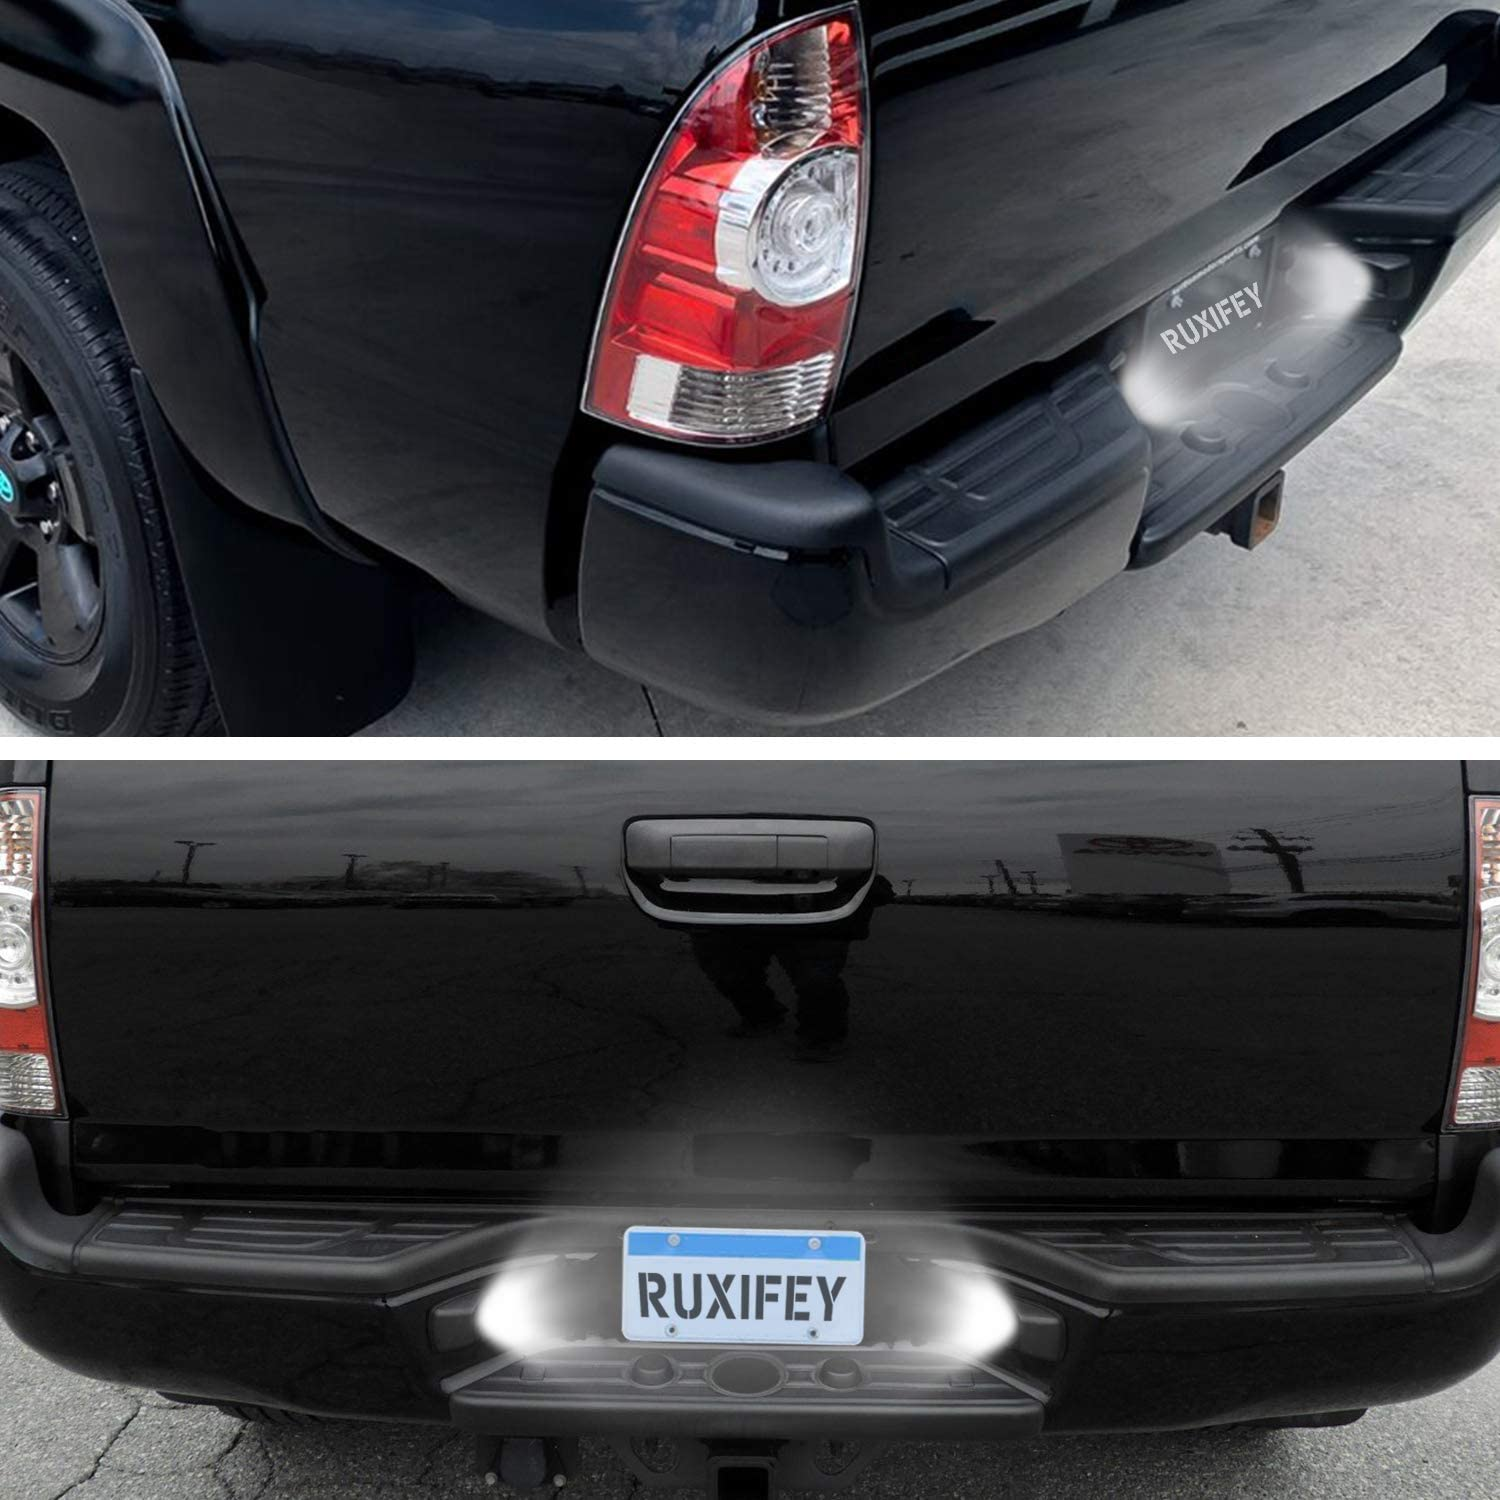 RUXIFEY LED License Plate Light Lamp Replacement Compatible with ...